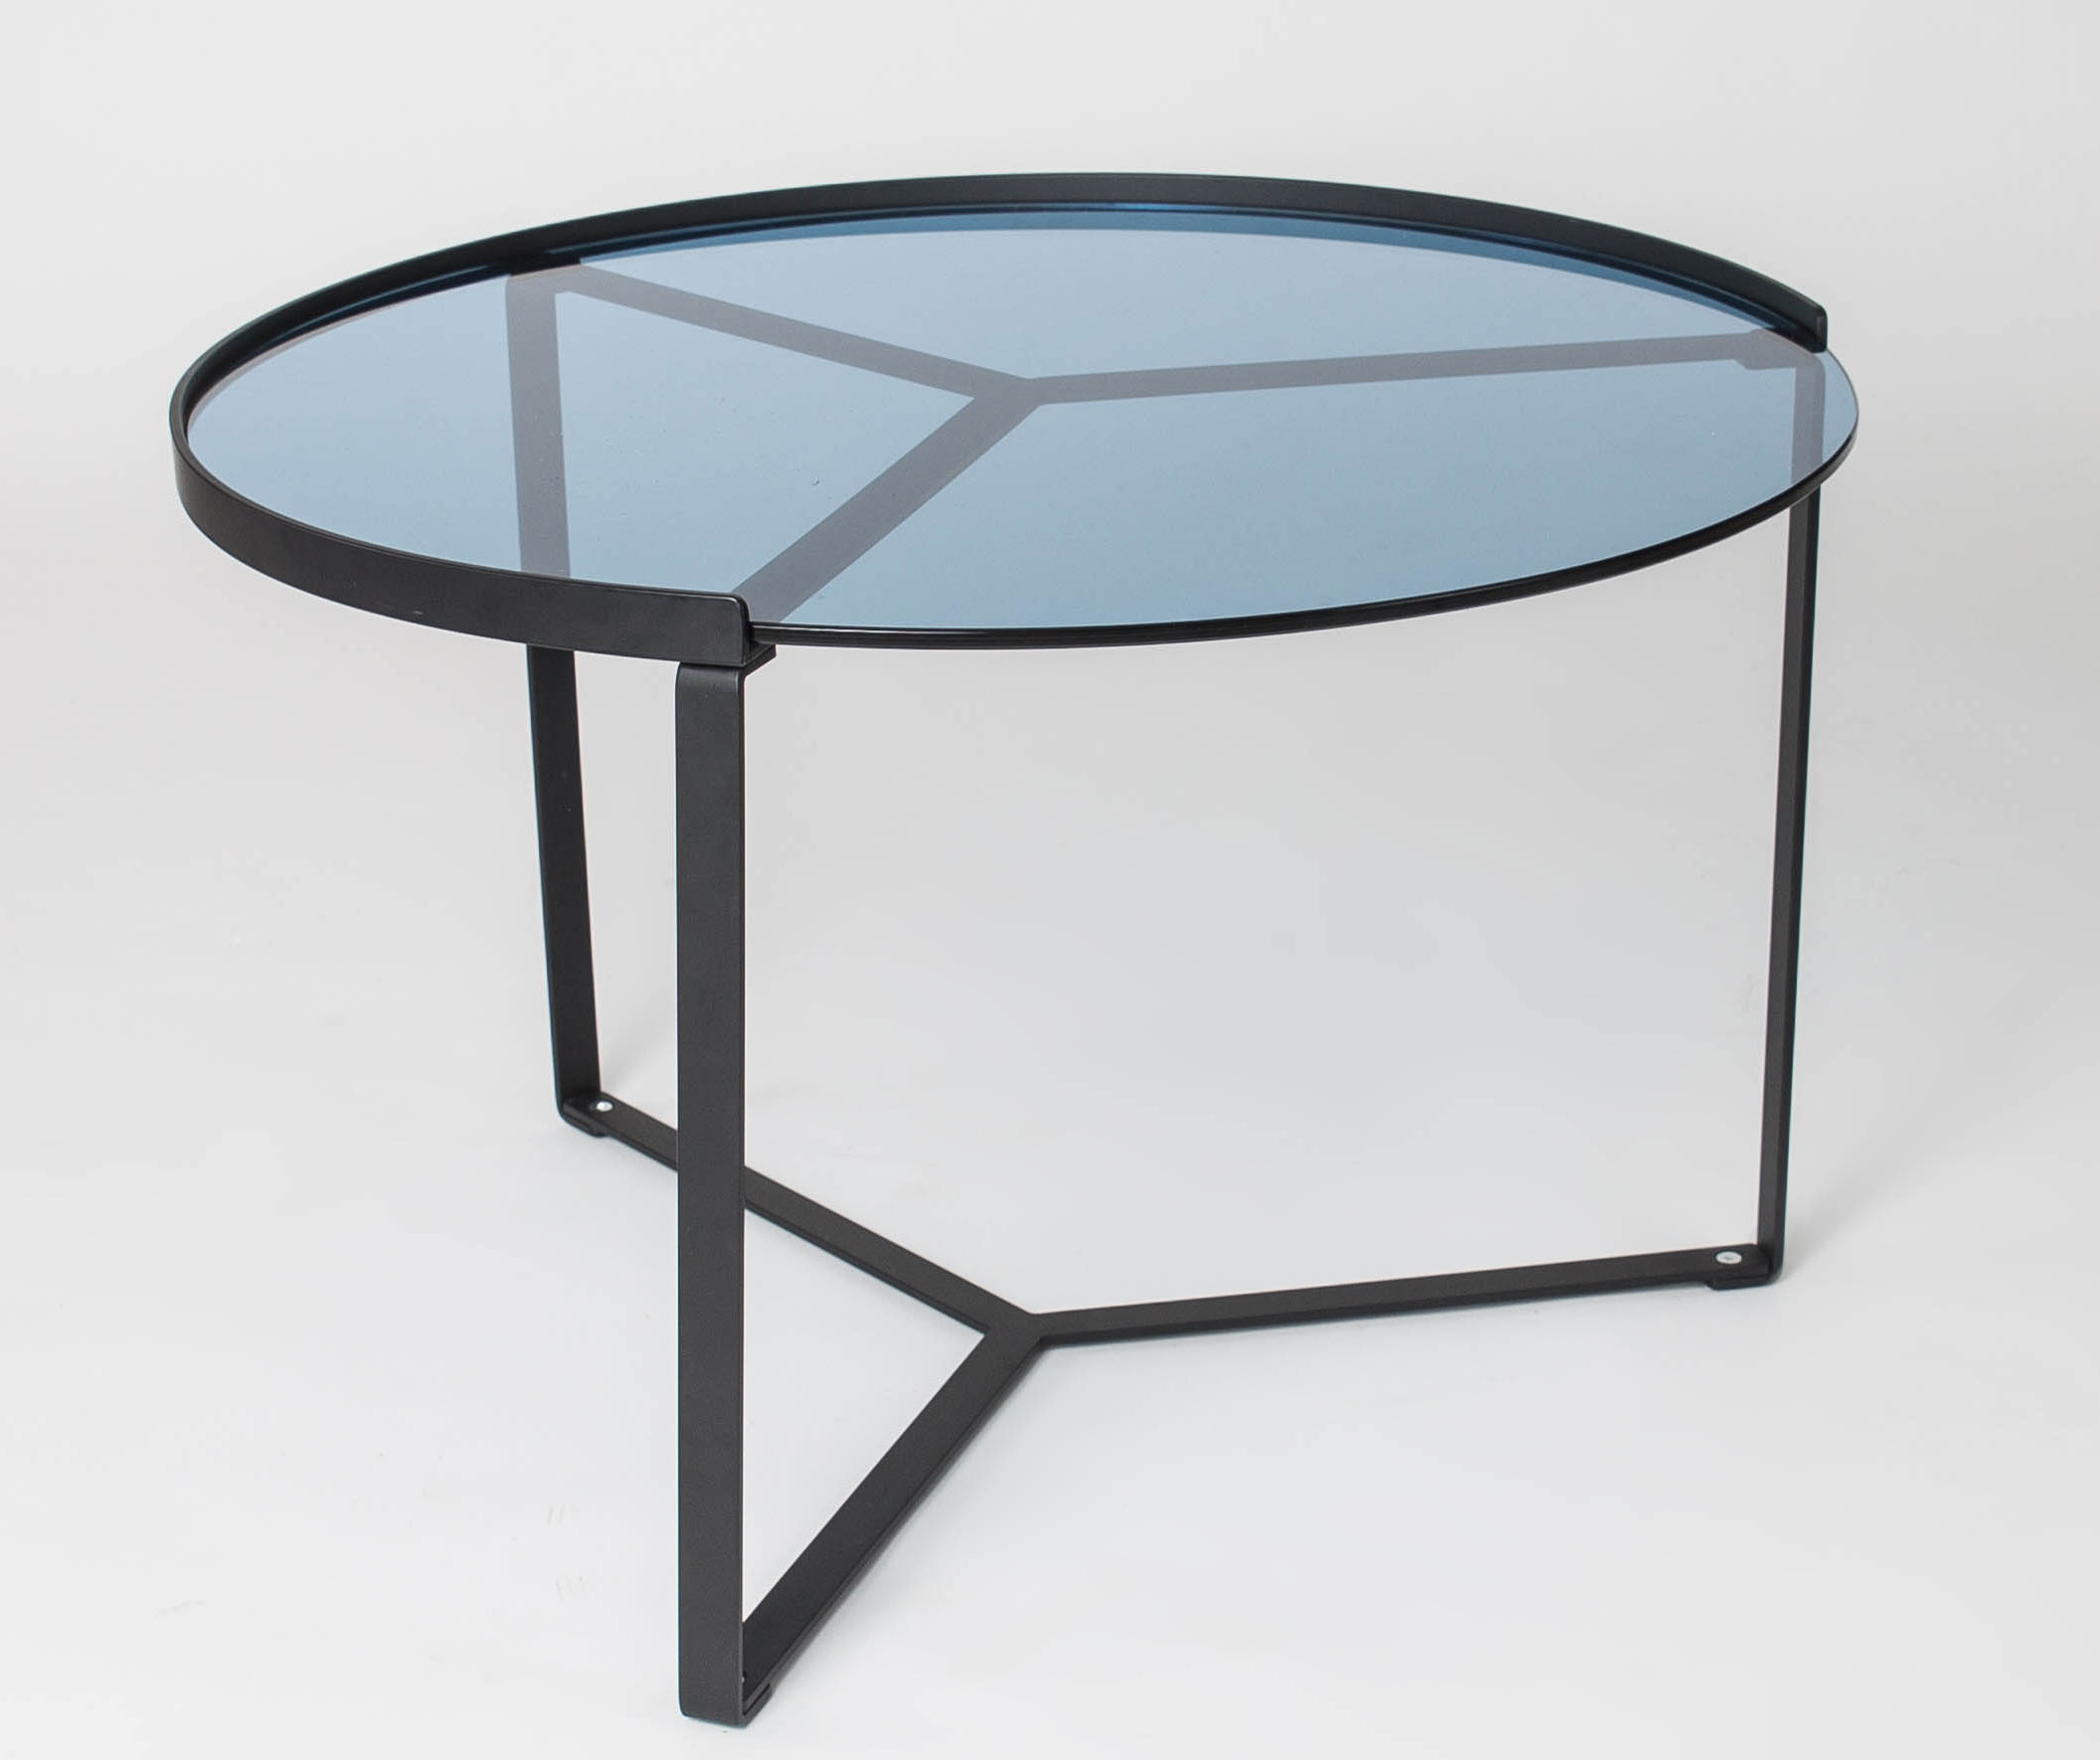 Table Basse Design Ronde En Metal Noir Verre Bleu Elise Ii